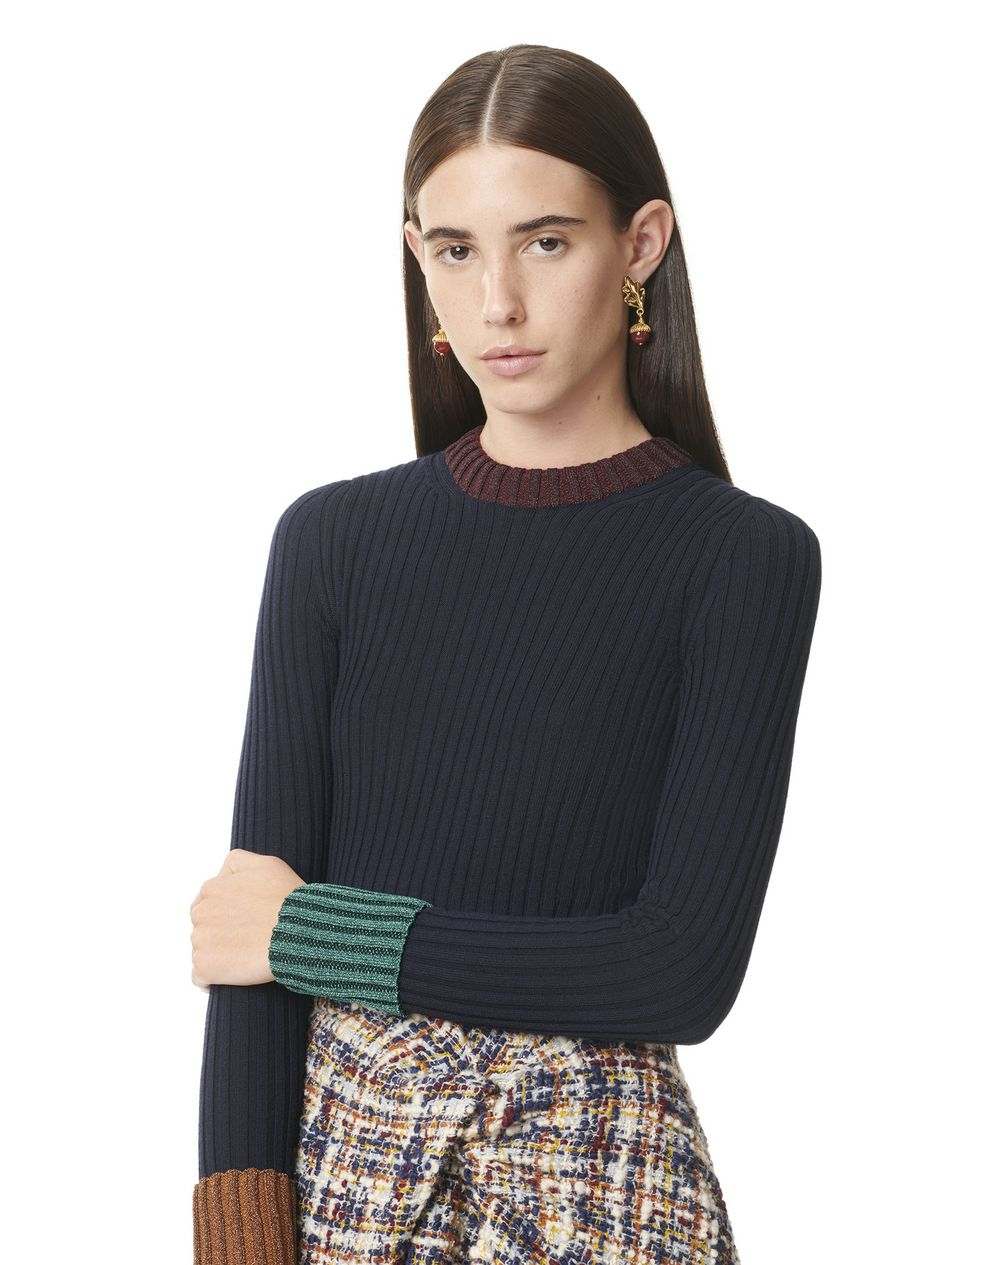 ROUND NECK FITTED SWEATER WITH CONTRASTING CUFFS AND COLLAR - Lanvin